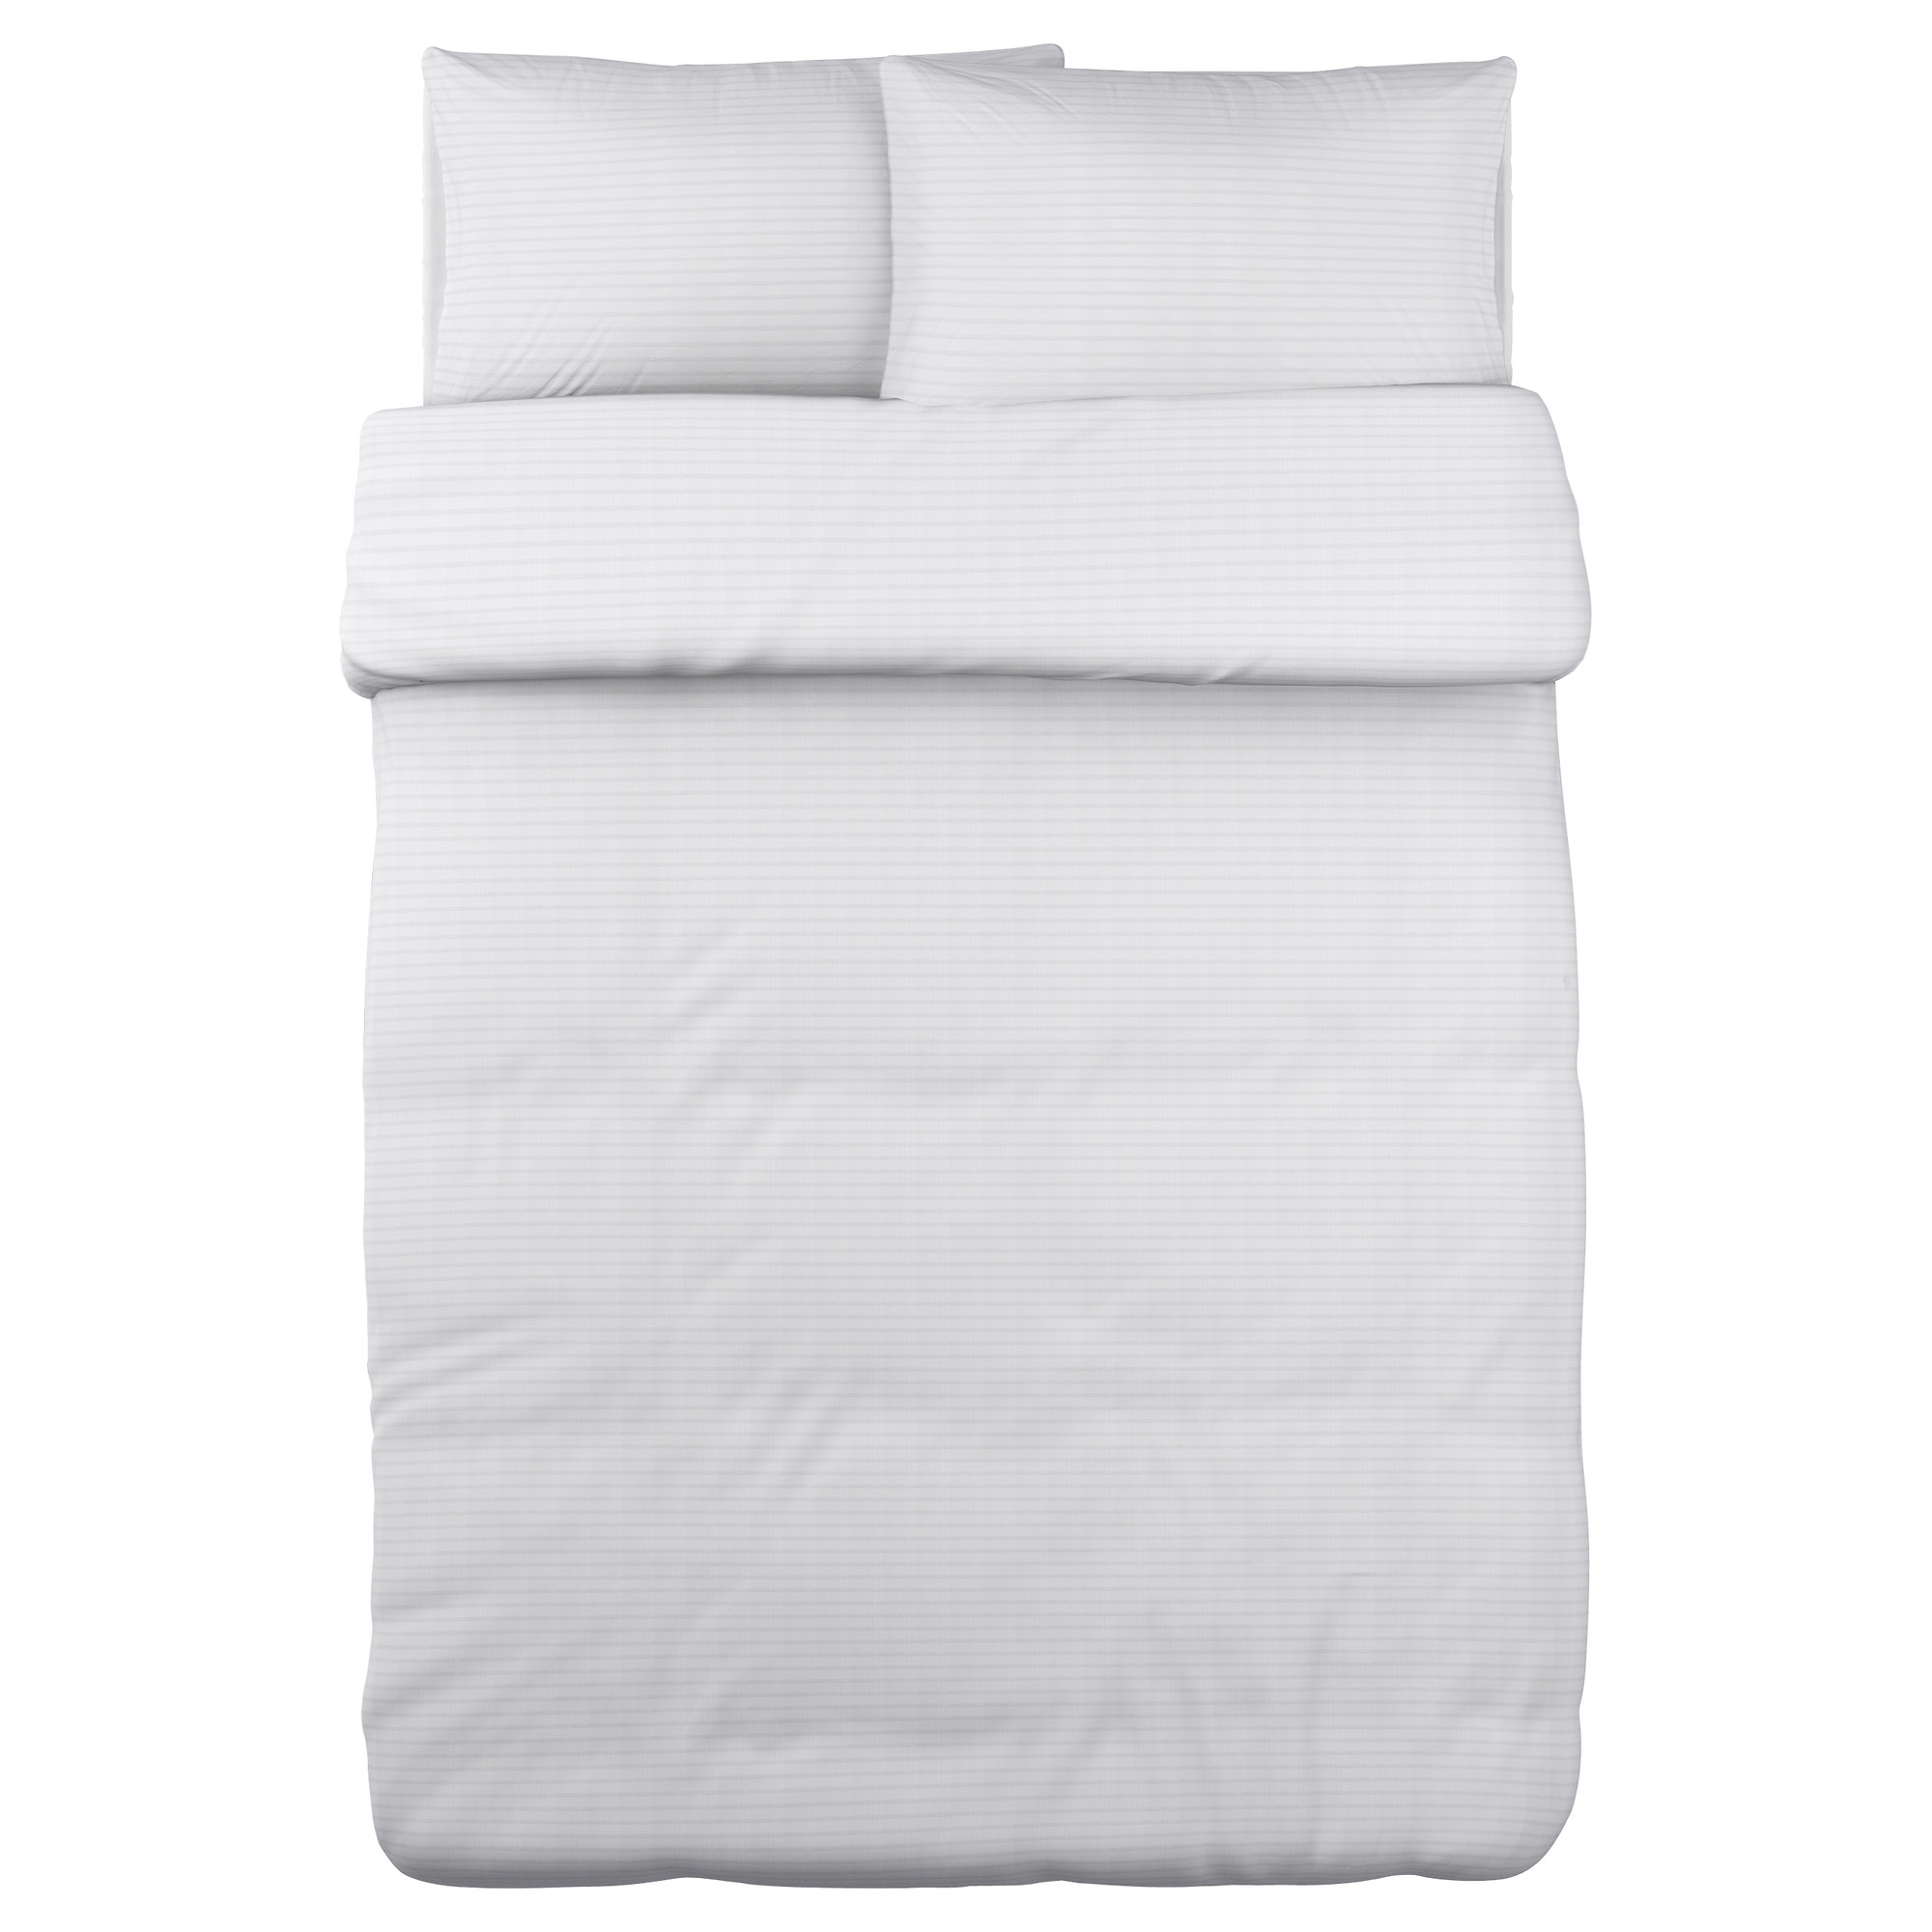 Urban Outfitters Duvet Covers | White King Size Duvet Cover | White Duvet Cover